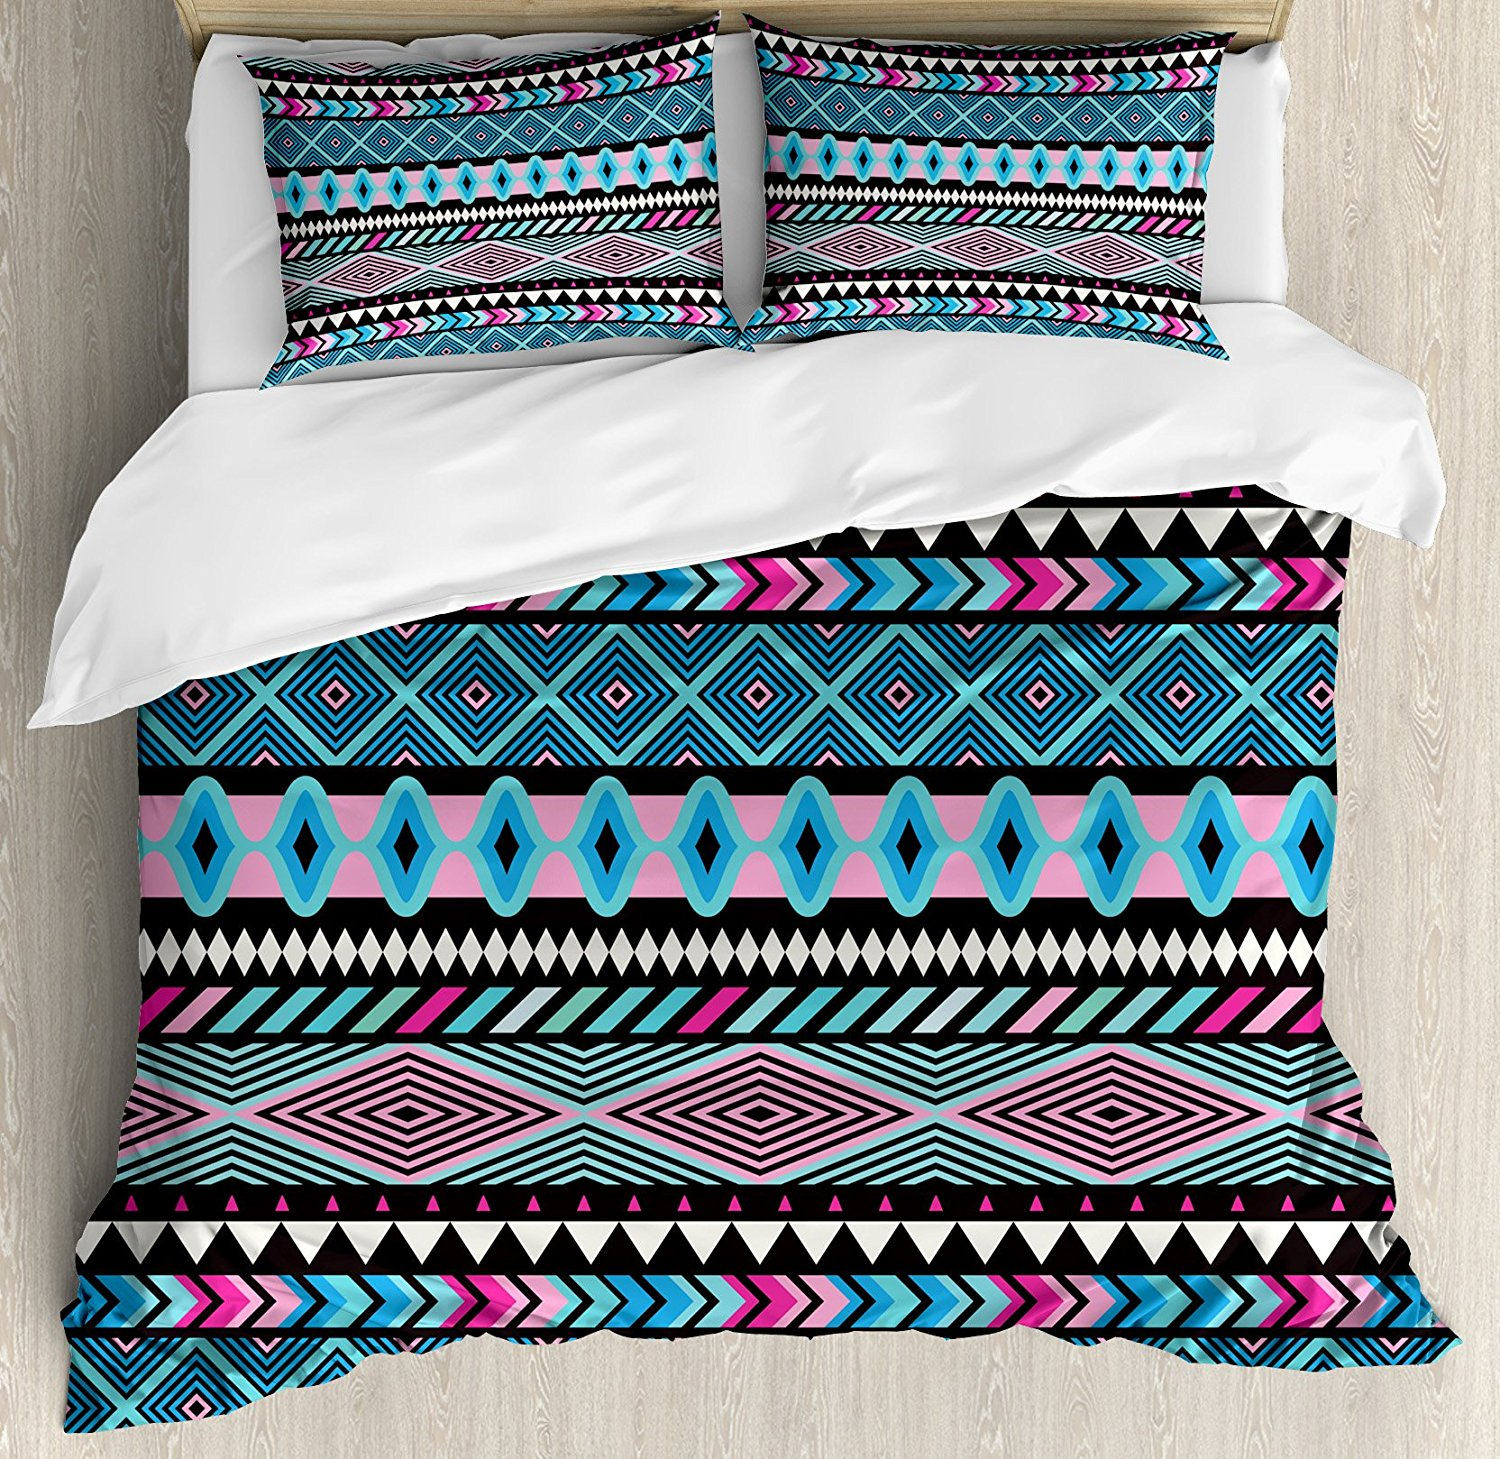 duvet cover cottage product indigo project pattern tribal duvets